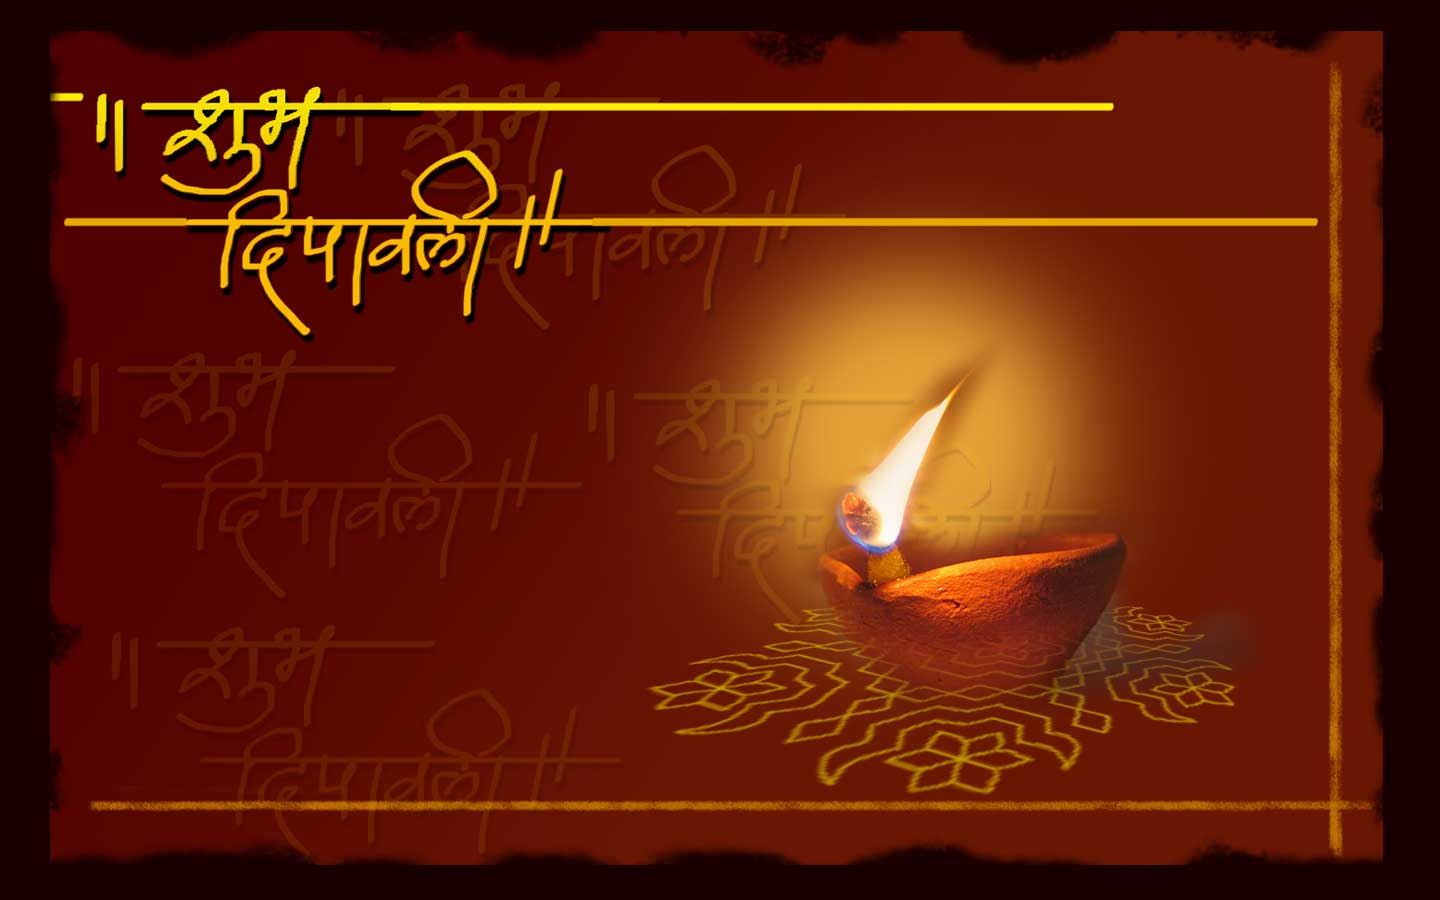 http://3.bp.blogspot.com/-if_-JeO1me0/TnnVxDjvnuI/AAAAAAAAAaU/wN2BxMB9VWI/s1600/downloads_wallpapers_diwali.jpg